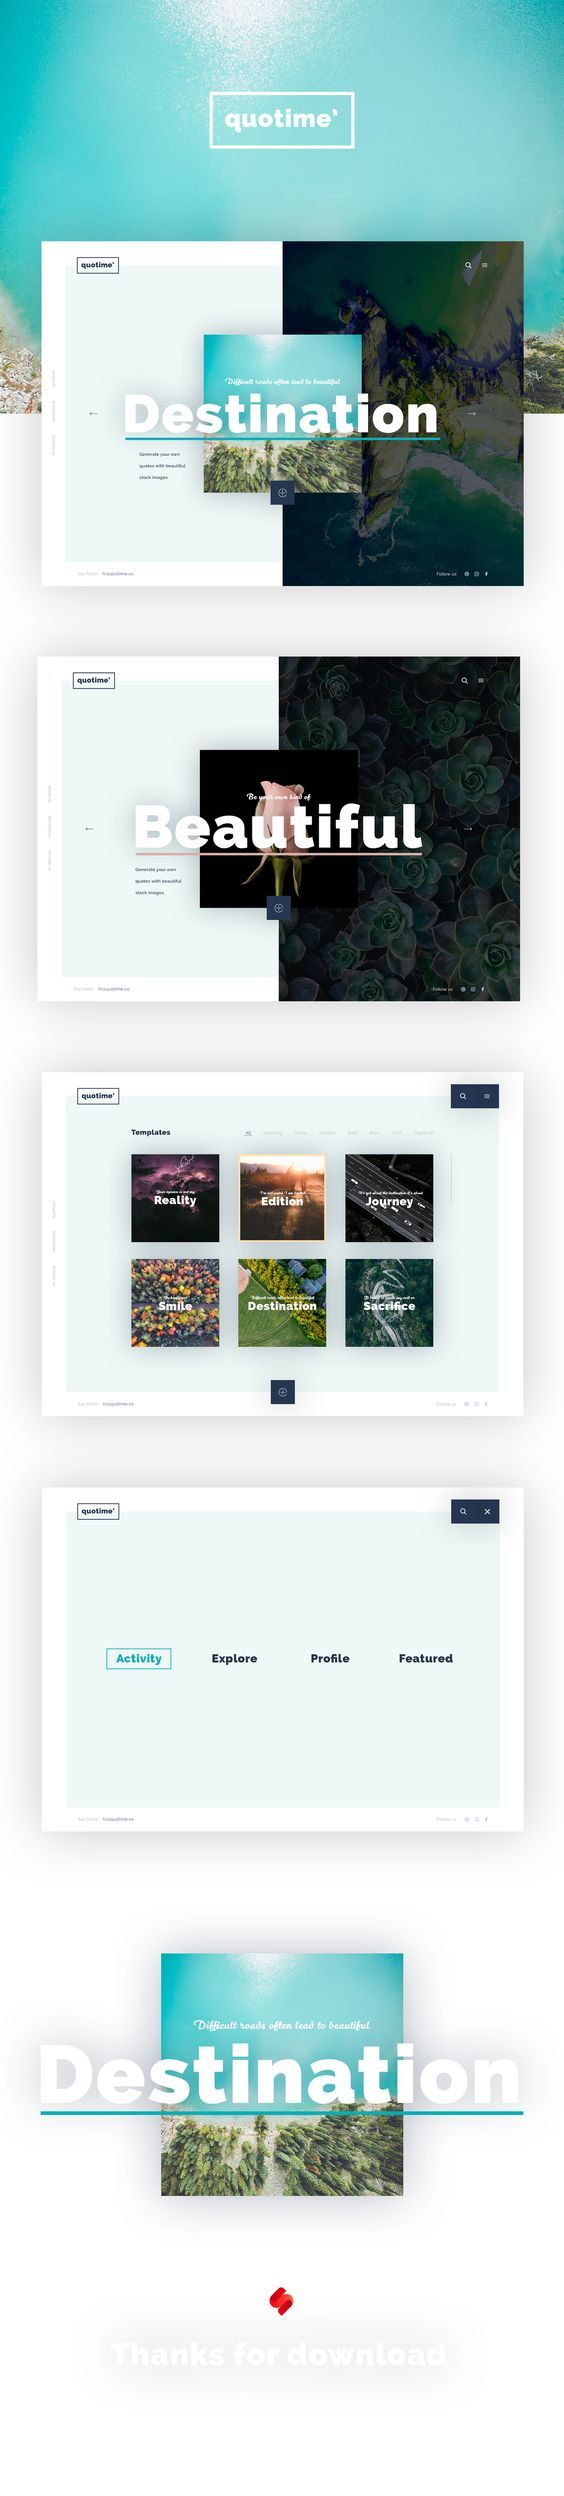 Best 25+ Site design ideas on Pinterest | Web design, Website ...